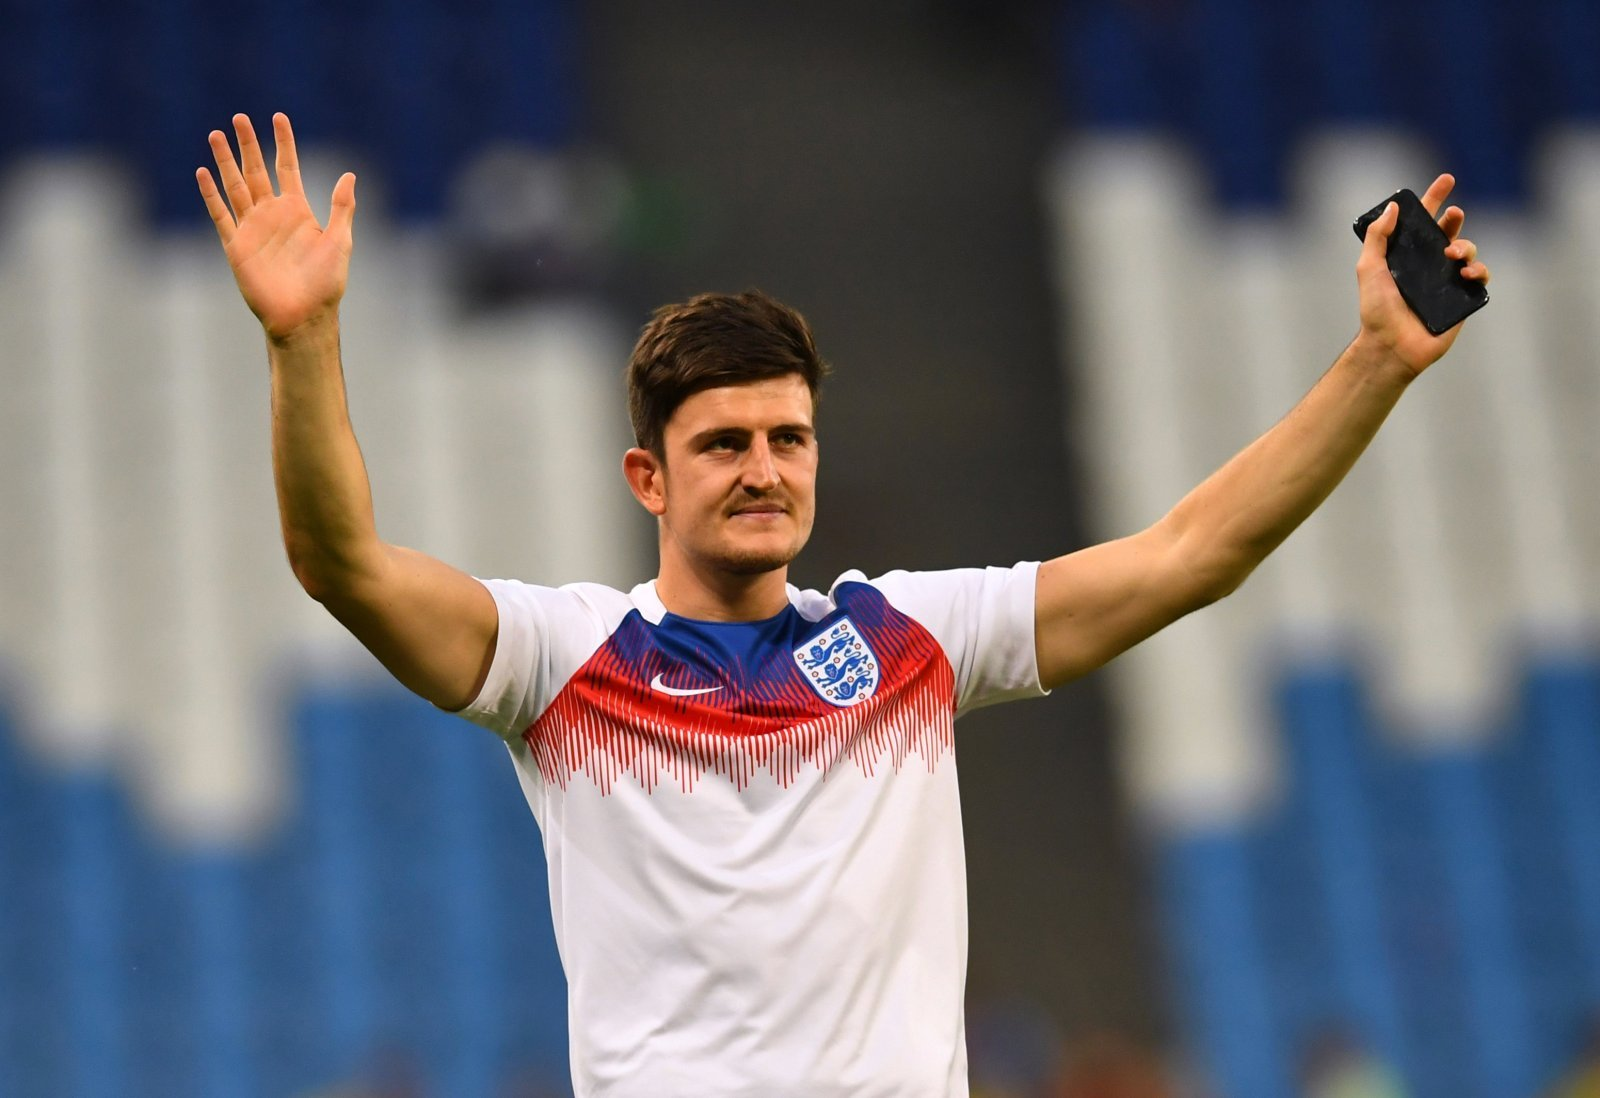 Simply brilliant: This World Cup star should be Man Utd's dream summer signing